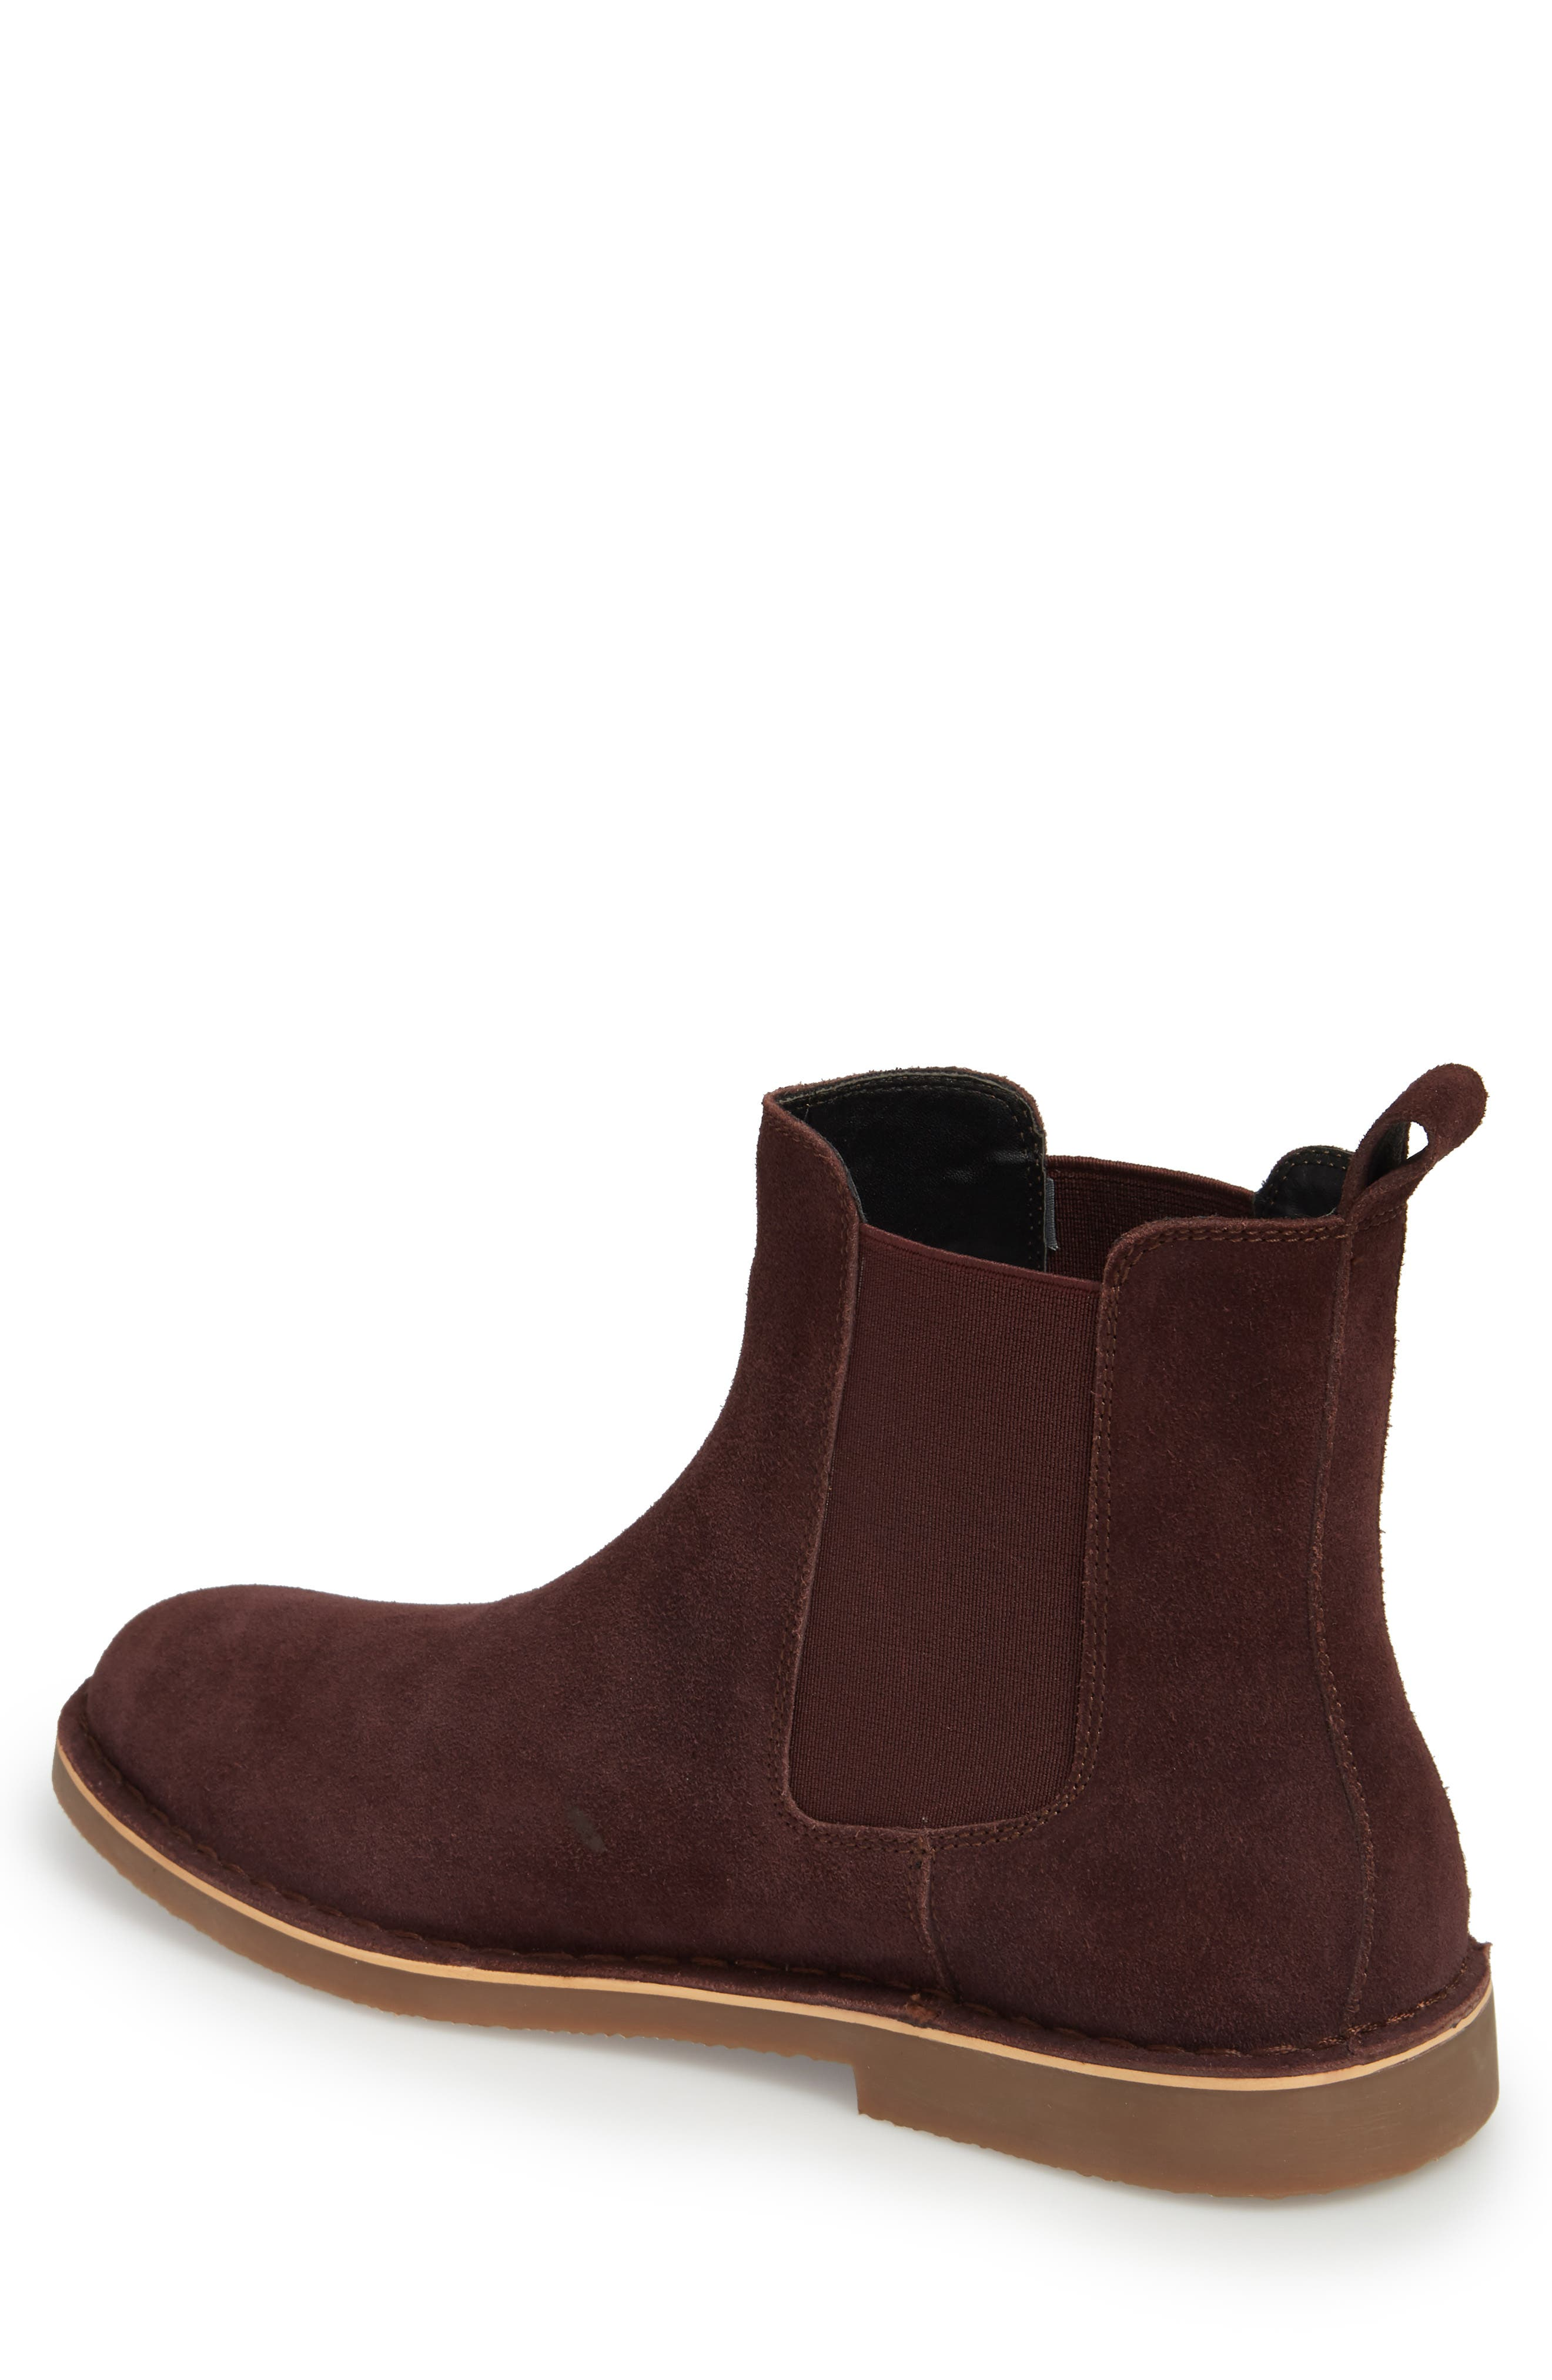 Mesa Chelsea Boot,                             Alternate thumbnail 2, color,                             BURGUNDY SUEDE